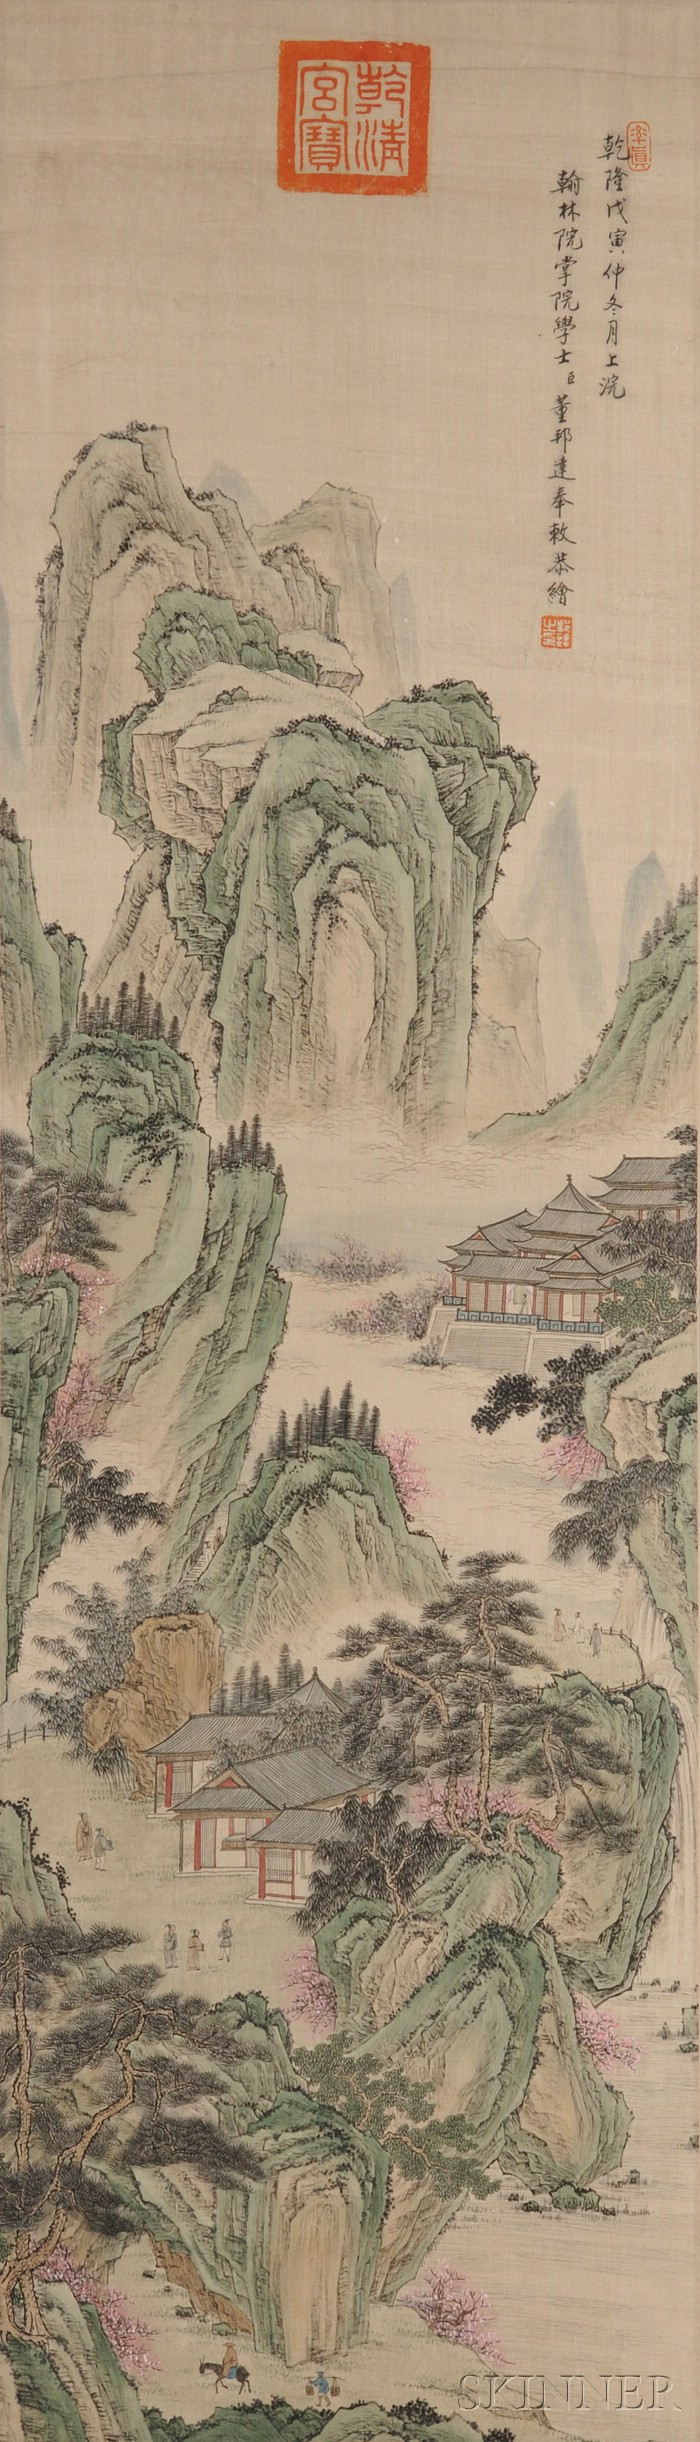 chinese painting 19th century copy of dong bangda ink and colors on silk hanging scroll format blue and gr chinese painting chinese landscape landscape art